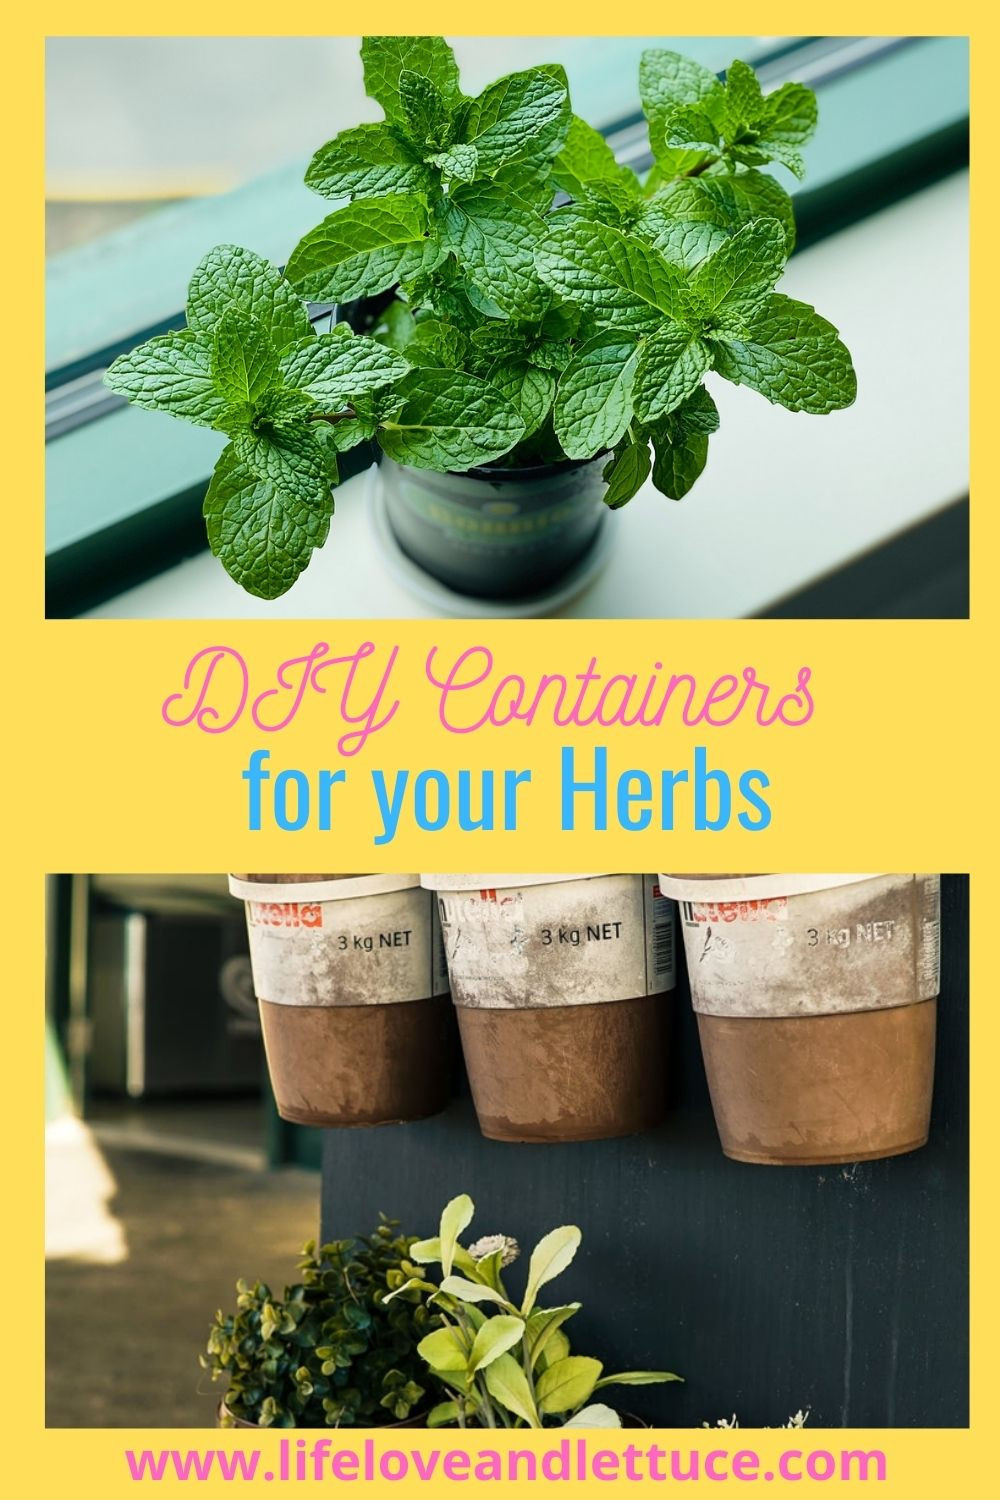 DIY containers for herbs www.lifeloveandlettuce.com